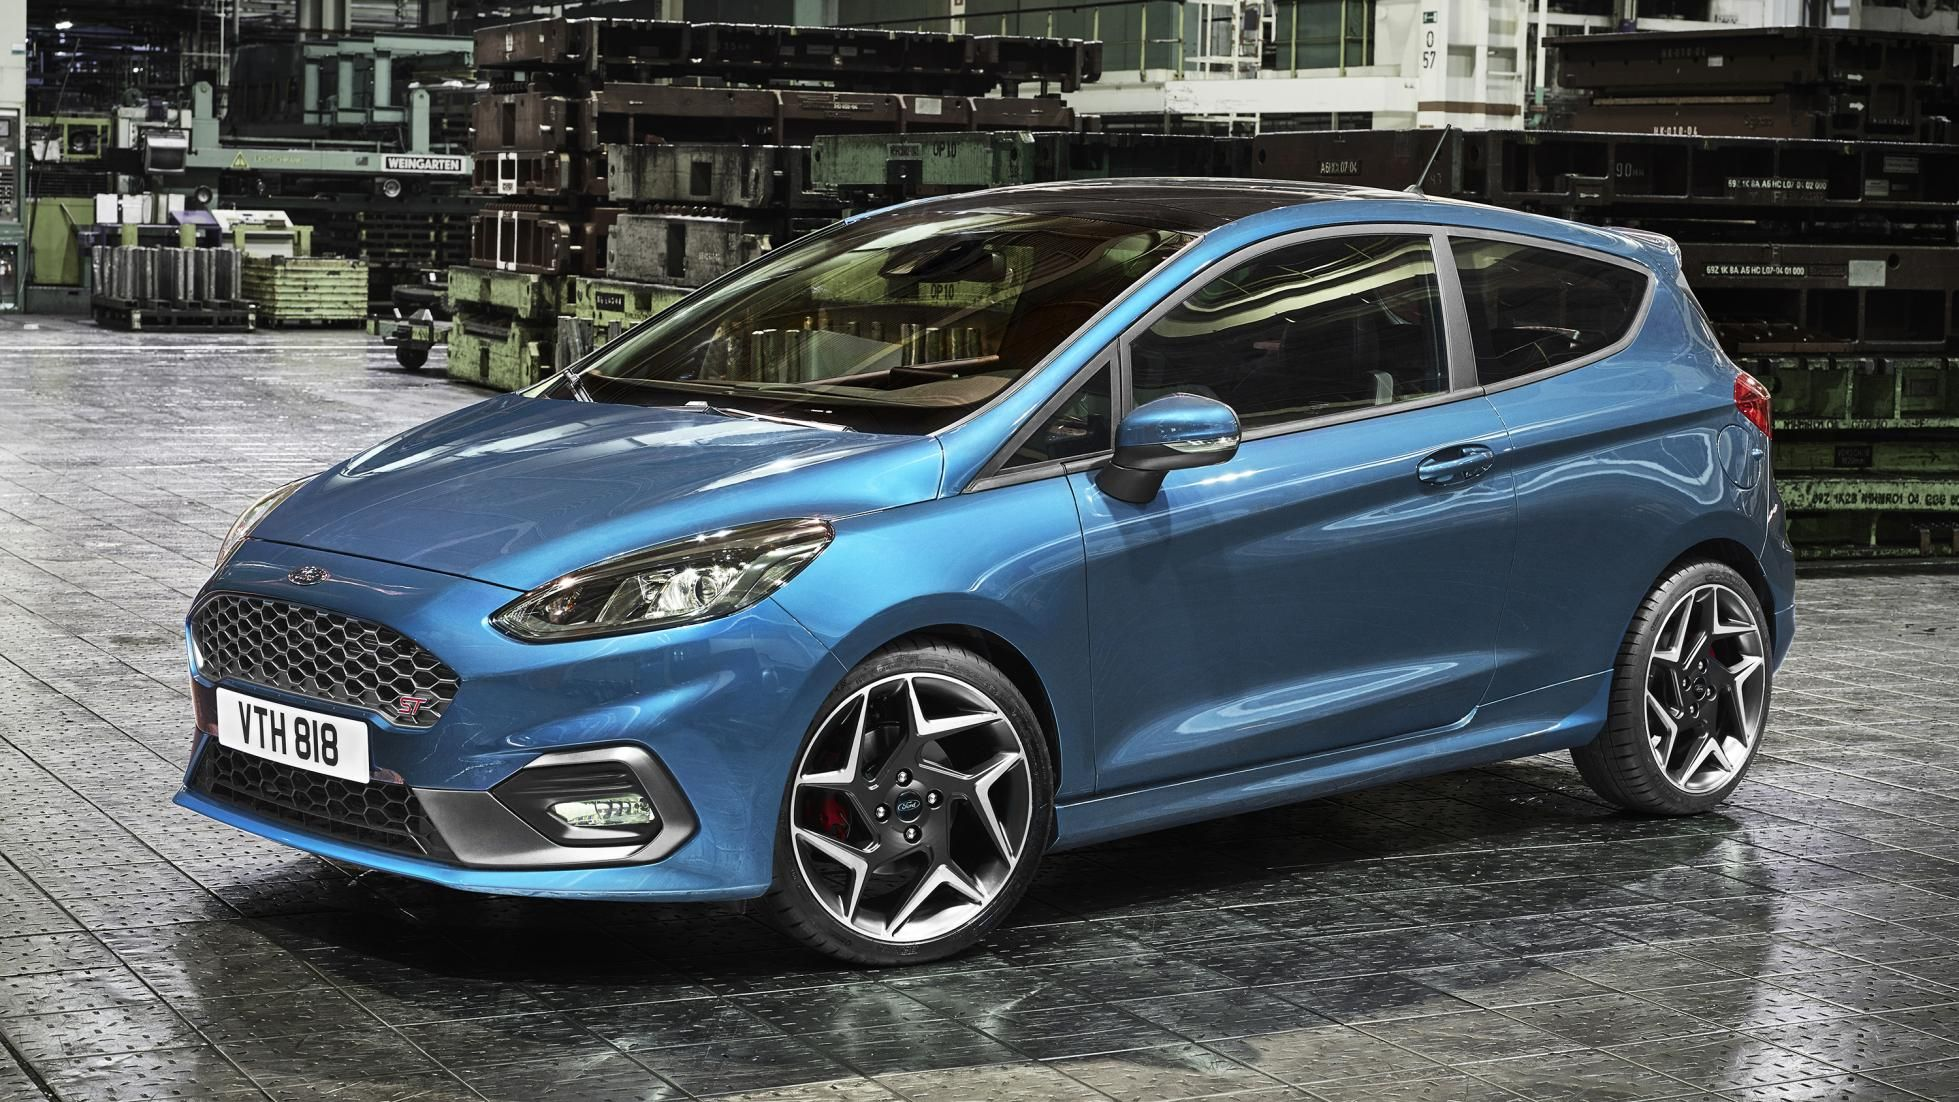 Pin By Vitalii Pan Ko On Ford Fiesta Ford Fiesta St Fiesta St Car Ford